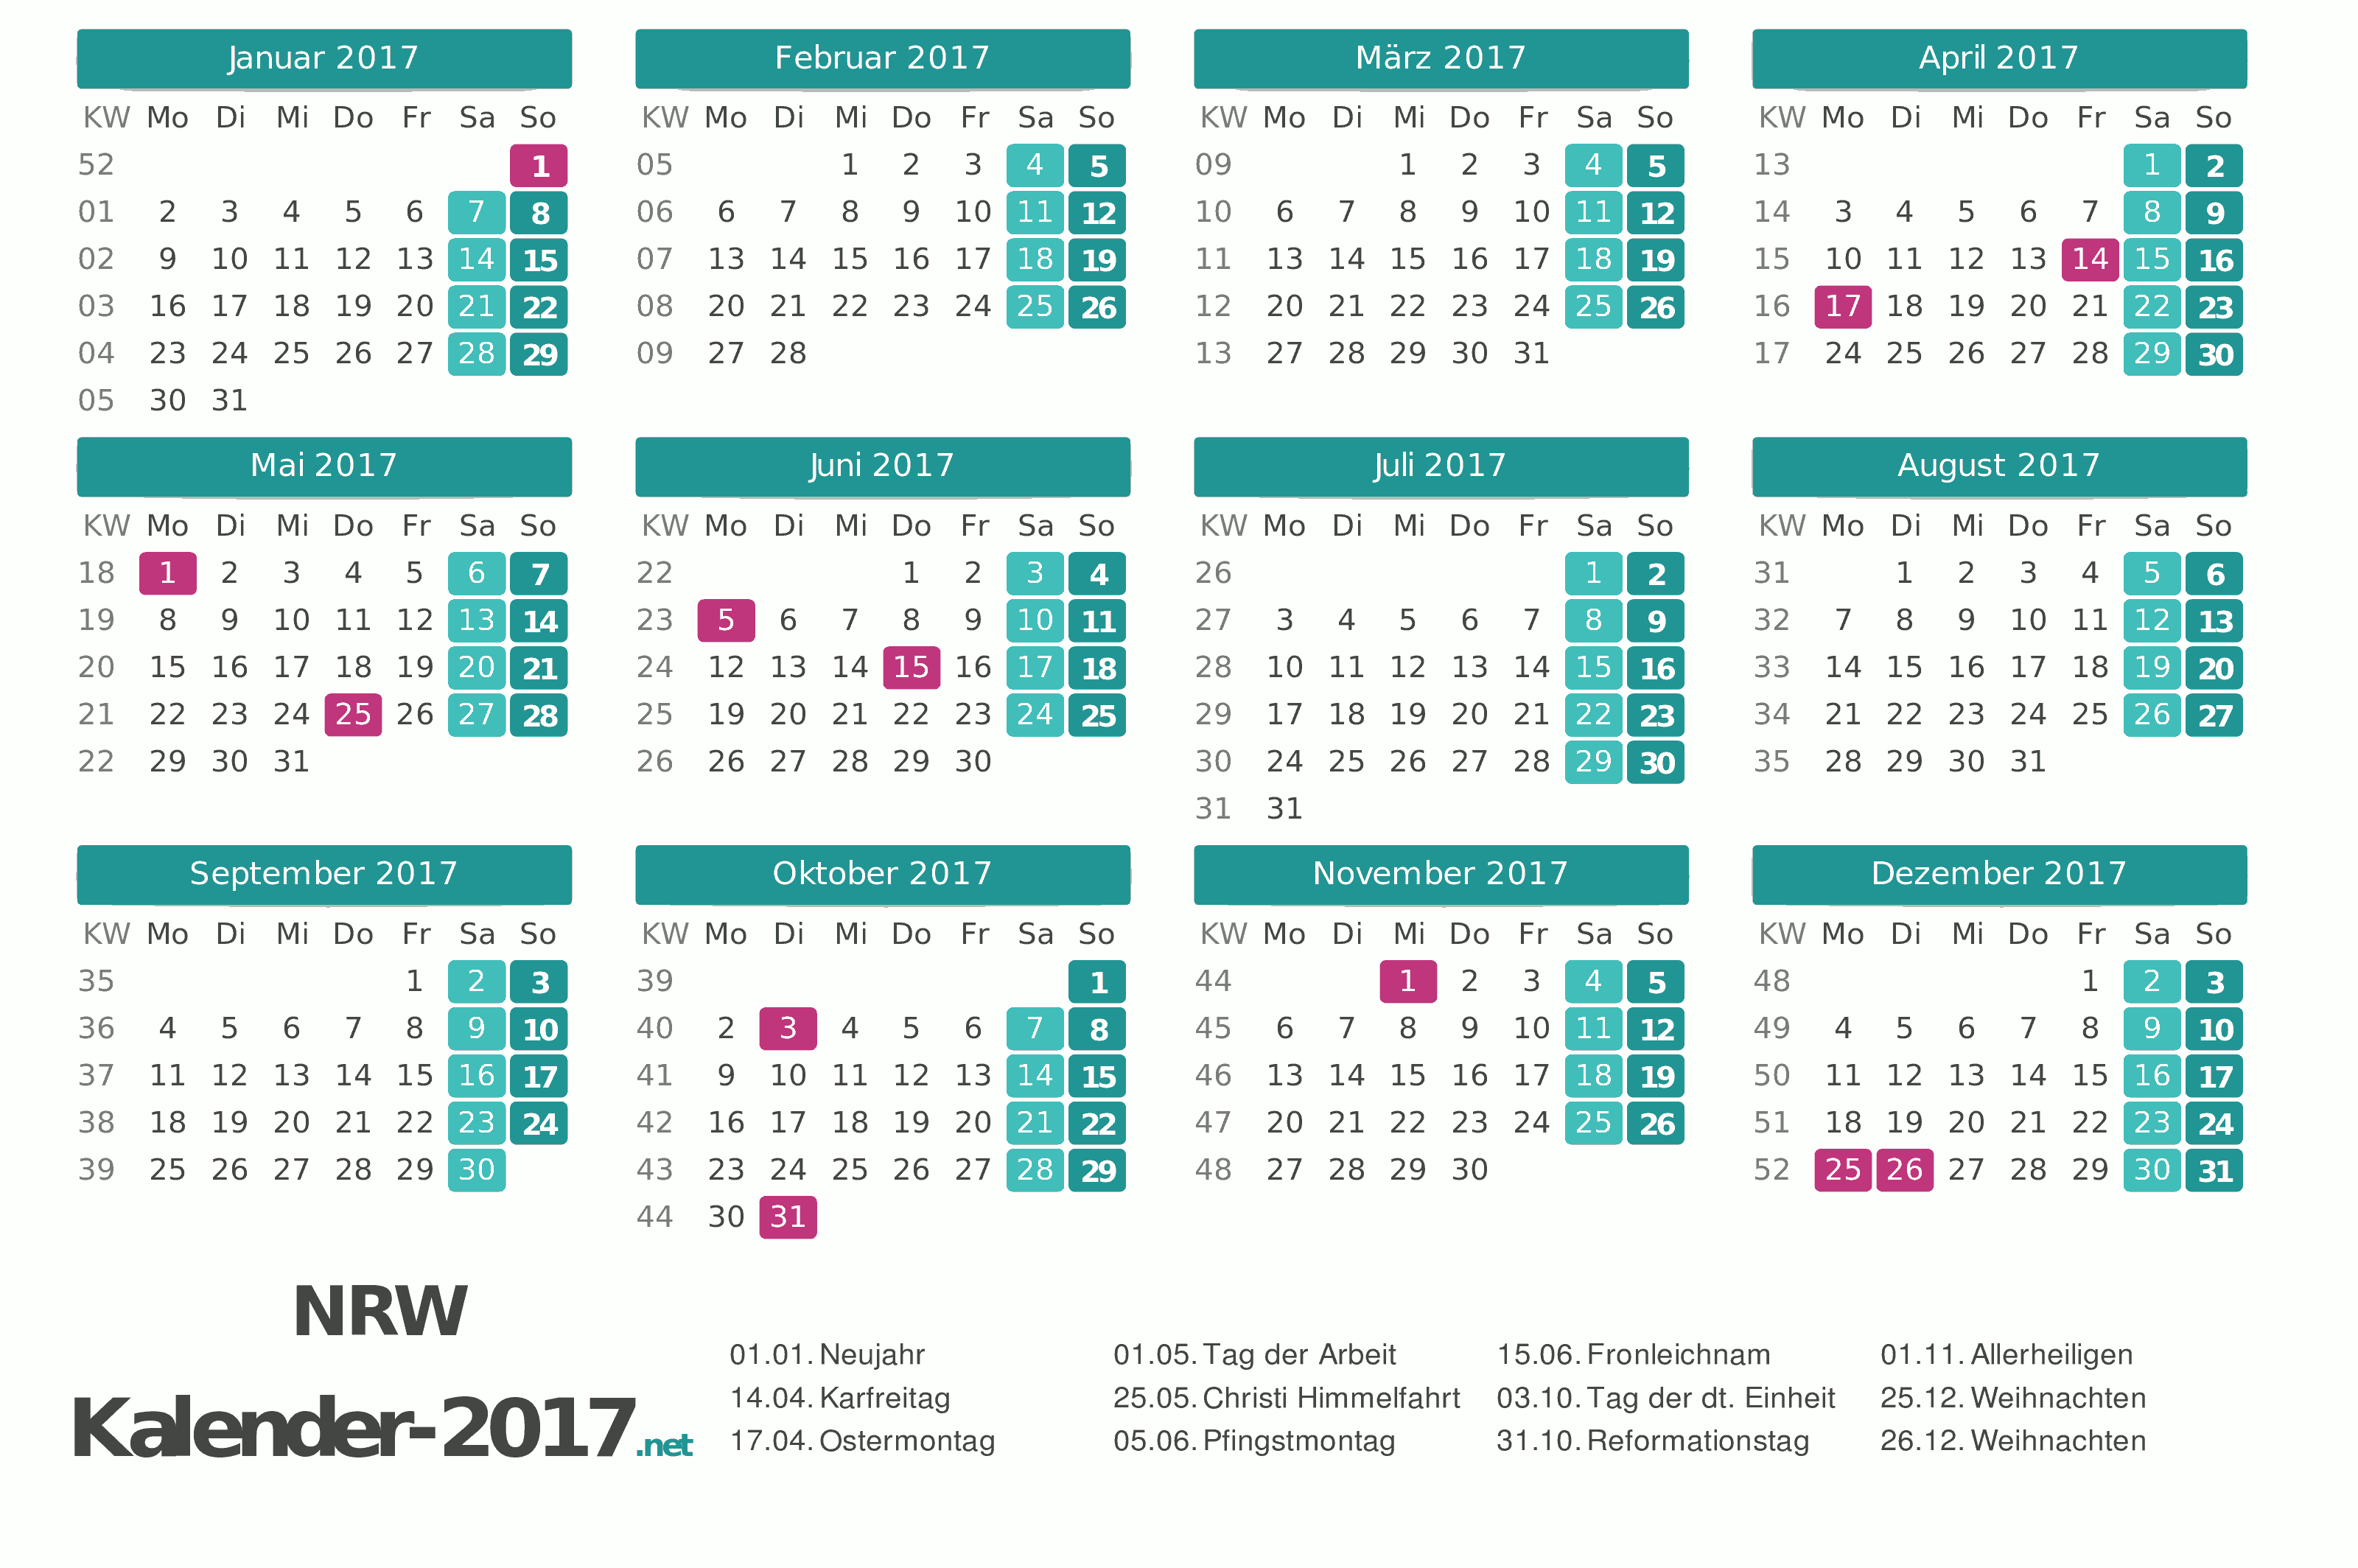 Kalender 2017 Nrw Related Keywords & Suggestions - Kalender 2017 Nrw ...